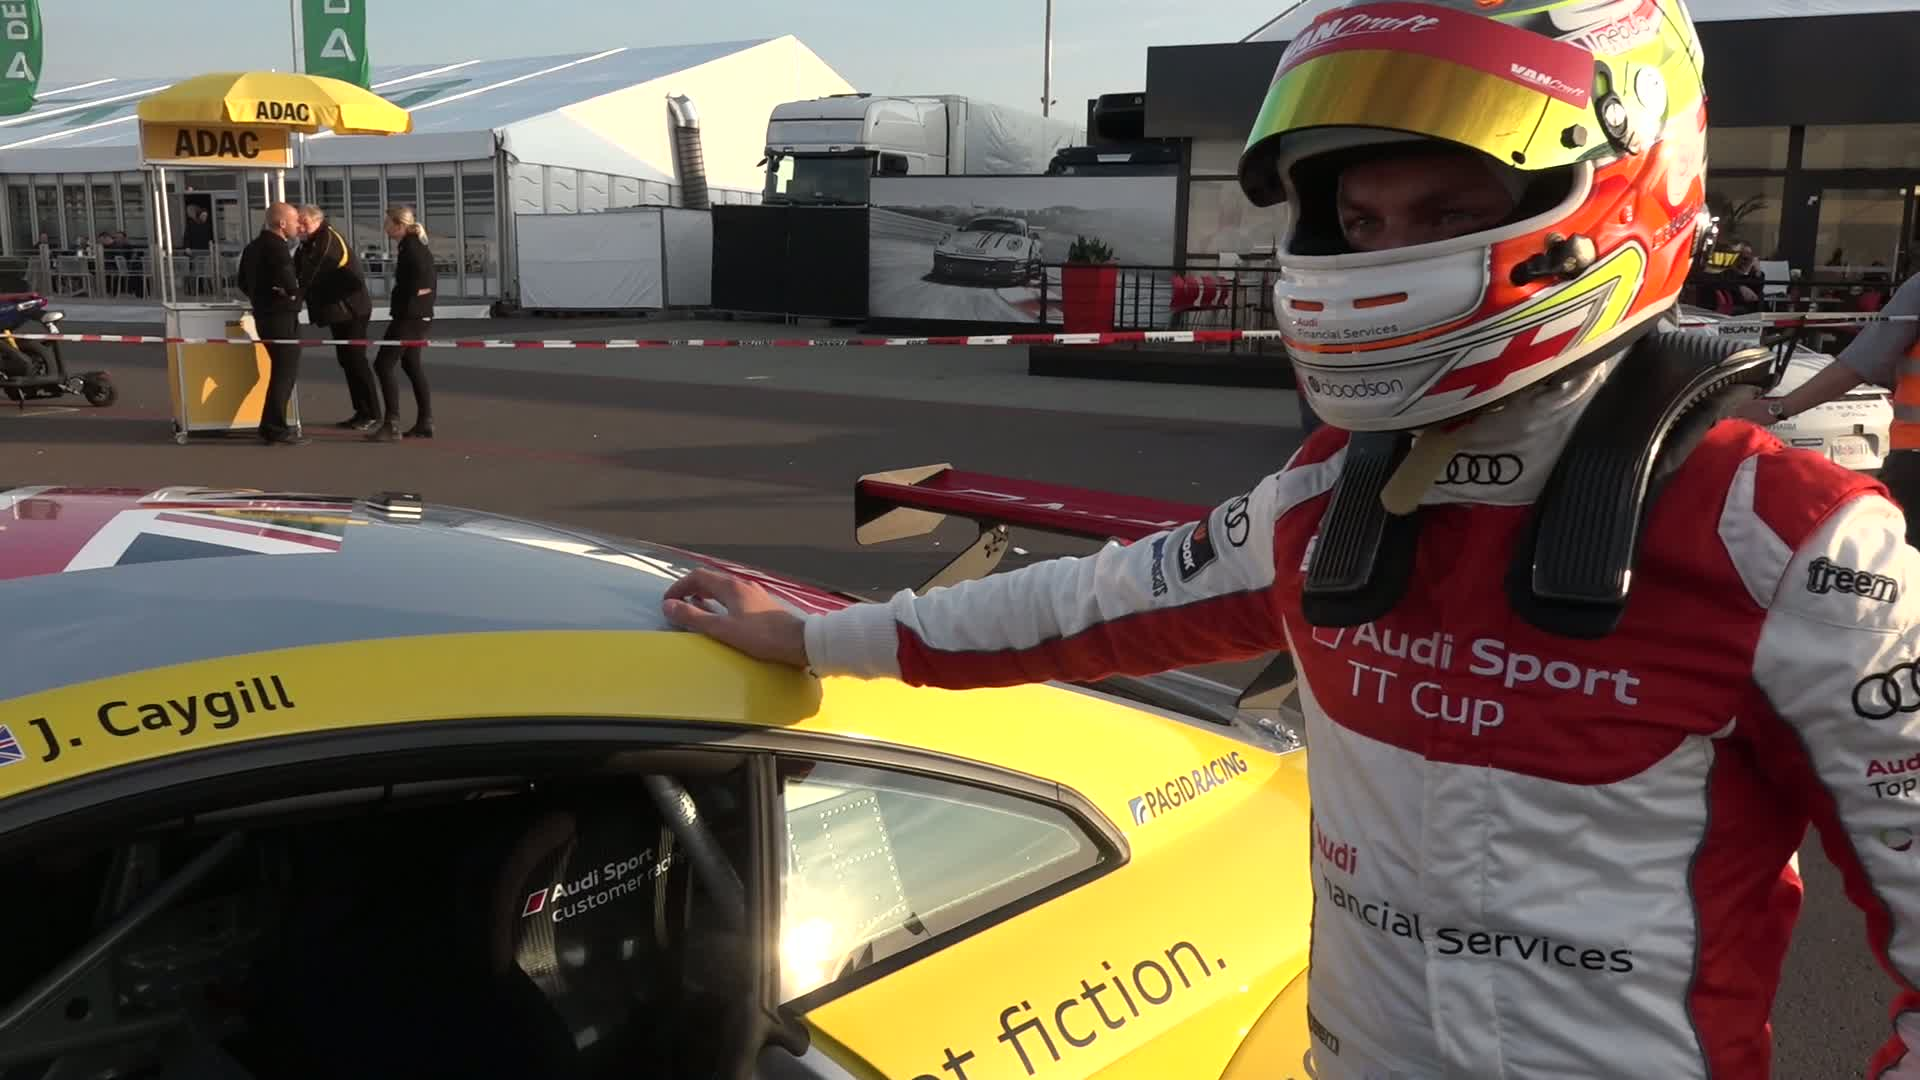 Audi Sport TT Cup - 'Our weekend' with Josh Caygill in Oschersleben